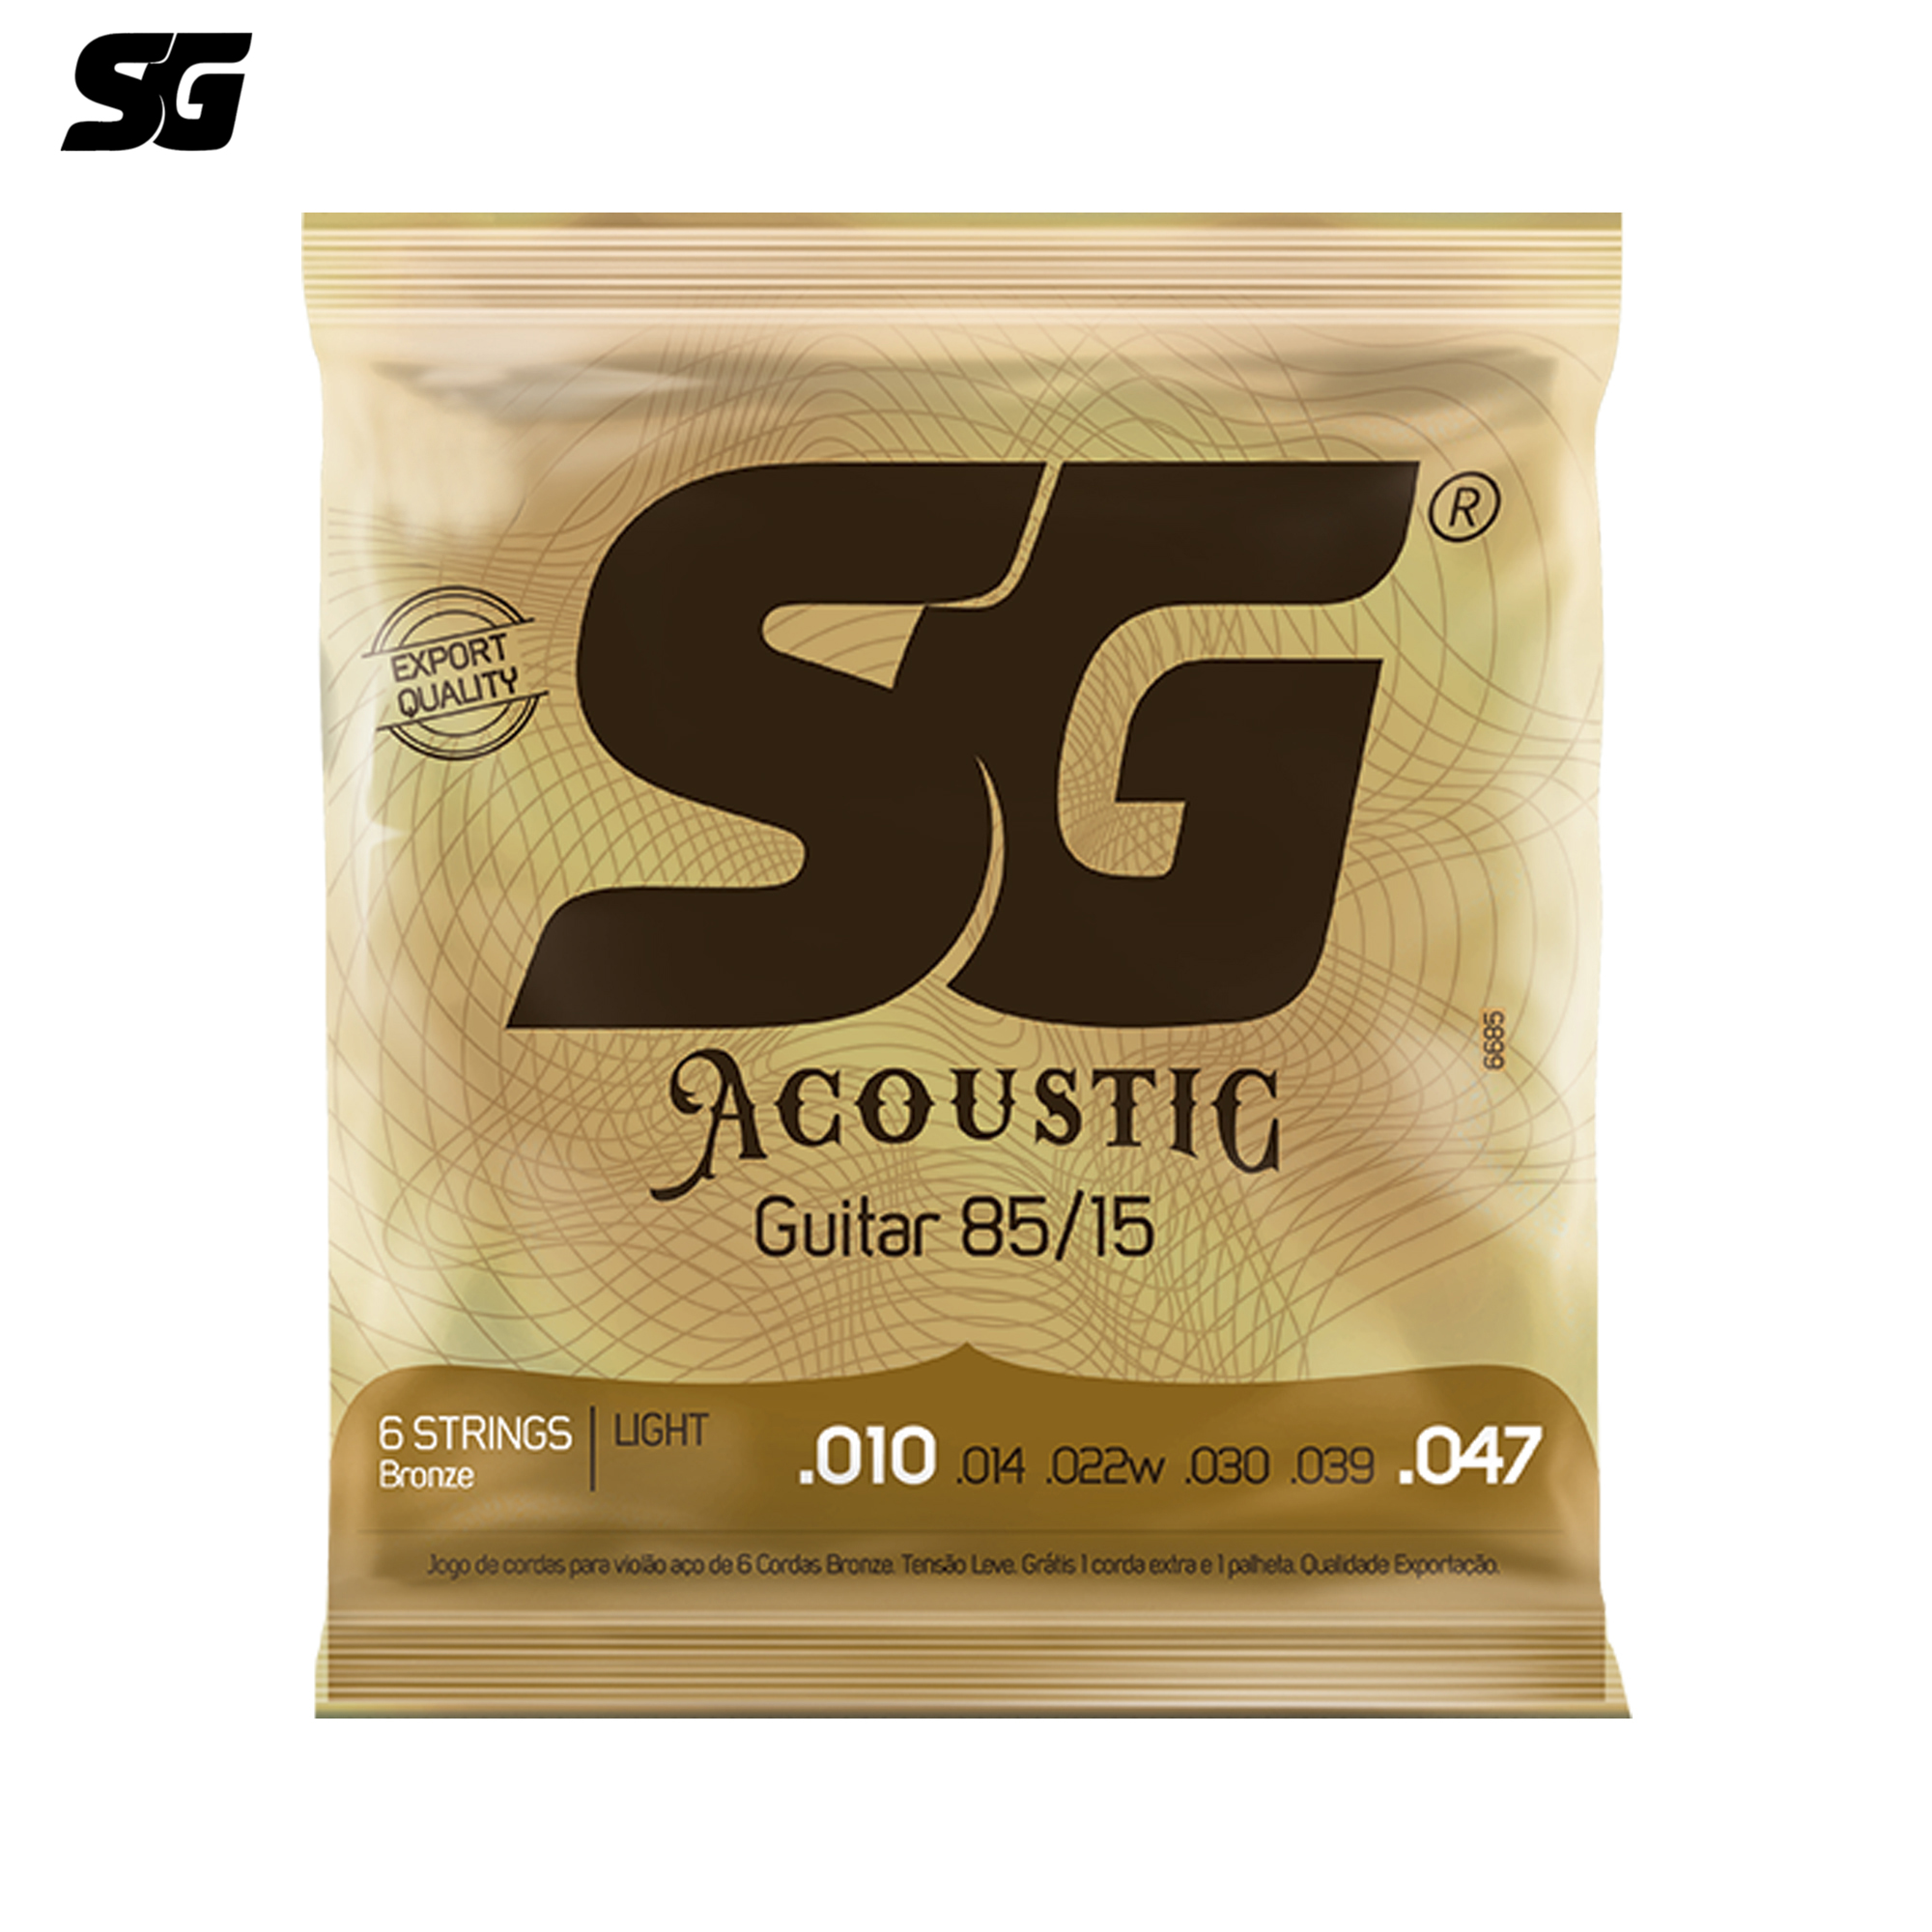 SG Brazil Acoustic Guitar Strings 010-047 inch 85/15 Brass Plated with 1 pc Free Extra E String and Pick 6685EX